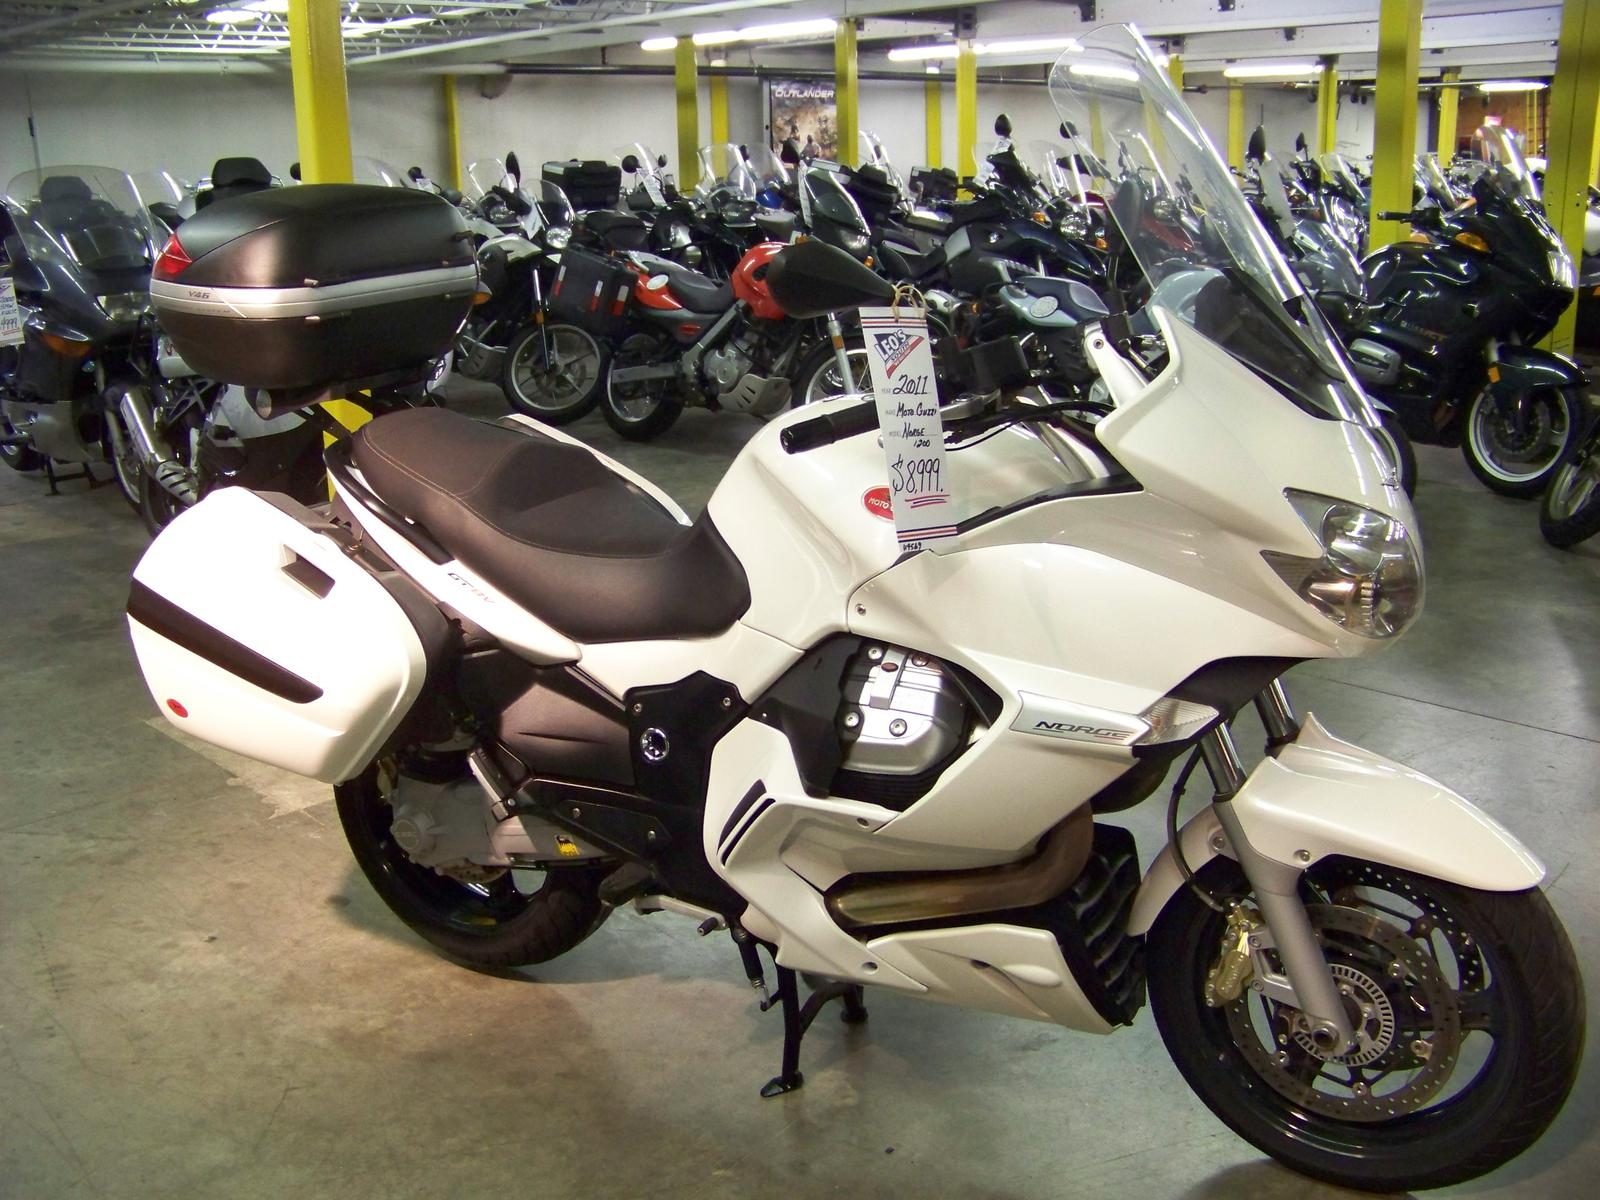 2011 Moto Guzzi NORGE 1200GT 8V, motorcycle listing